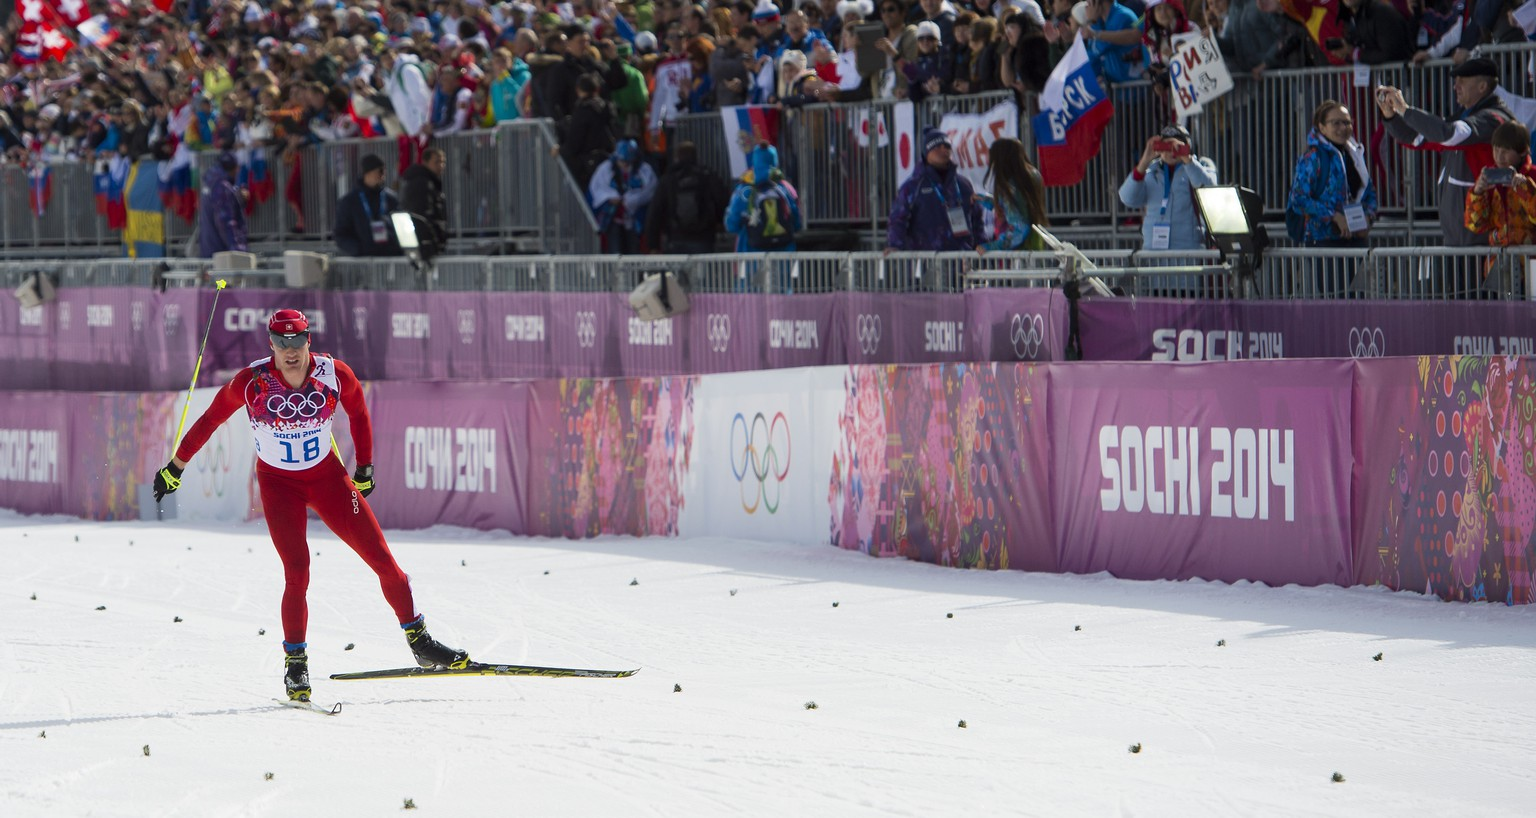 Dario Cologna of Switzerland in action during the men's cross country mass start 50km competition at the XXII Winter Olympics 2014 Sochi in Krasnaya Polyana, Russia, on Sunday, February 23, 2014. (KEYSTONE/Jean-Christophe Bott)